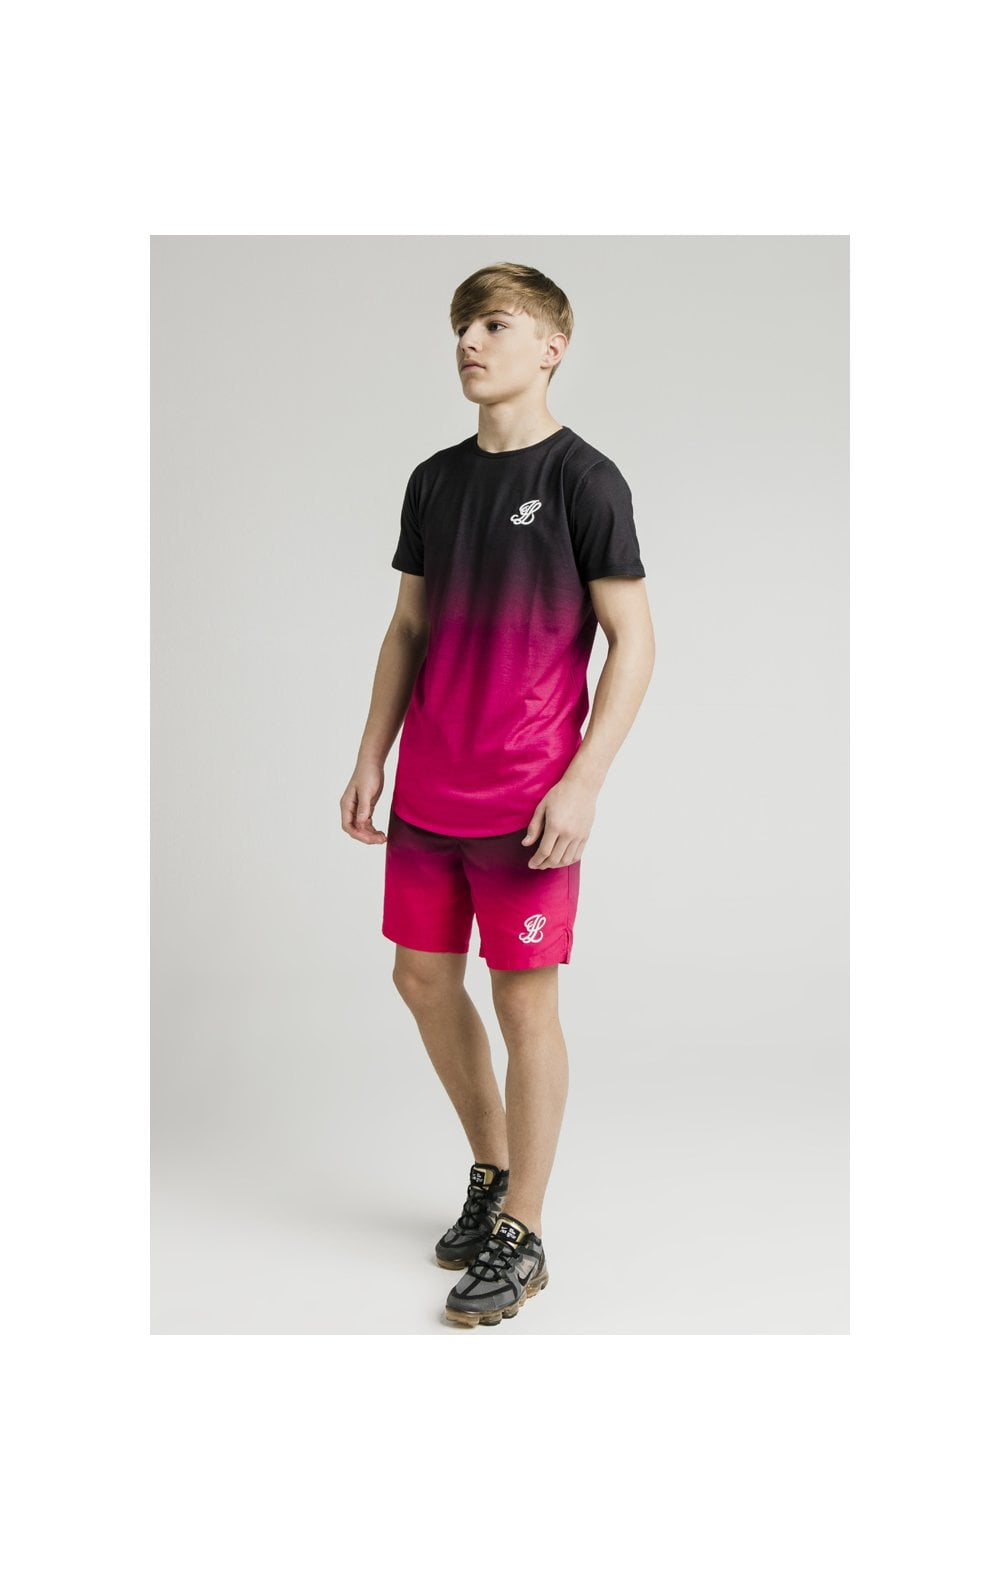 Illusive London Swim Shorts - Black & Pink (7)